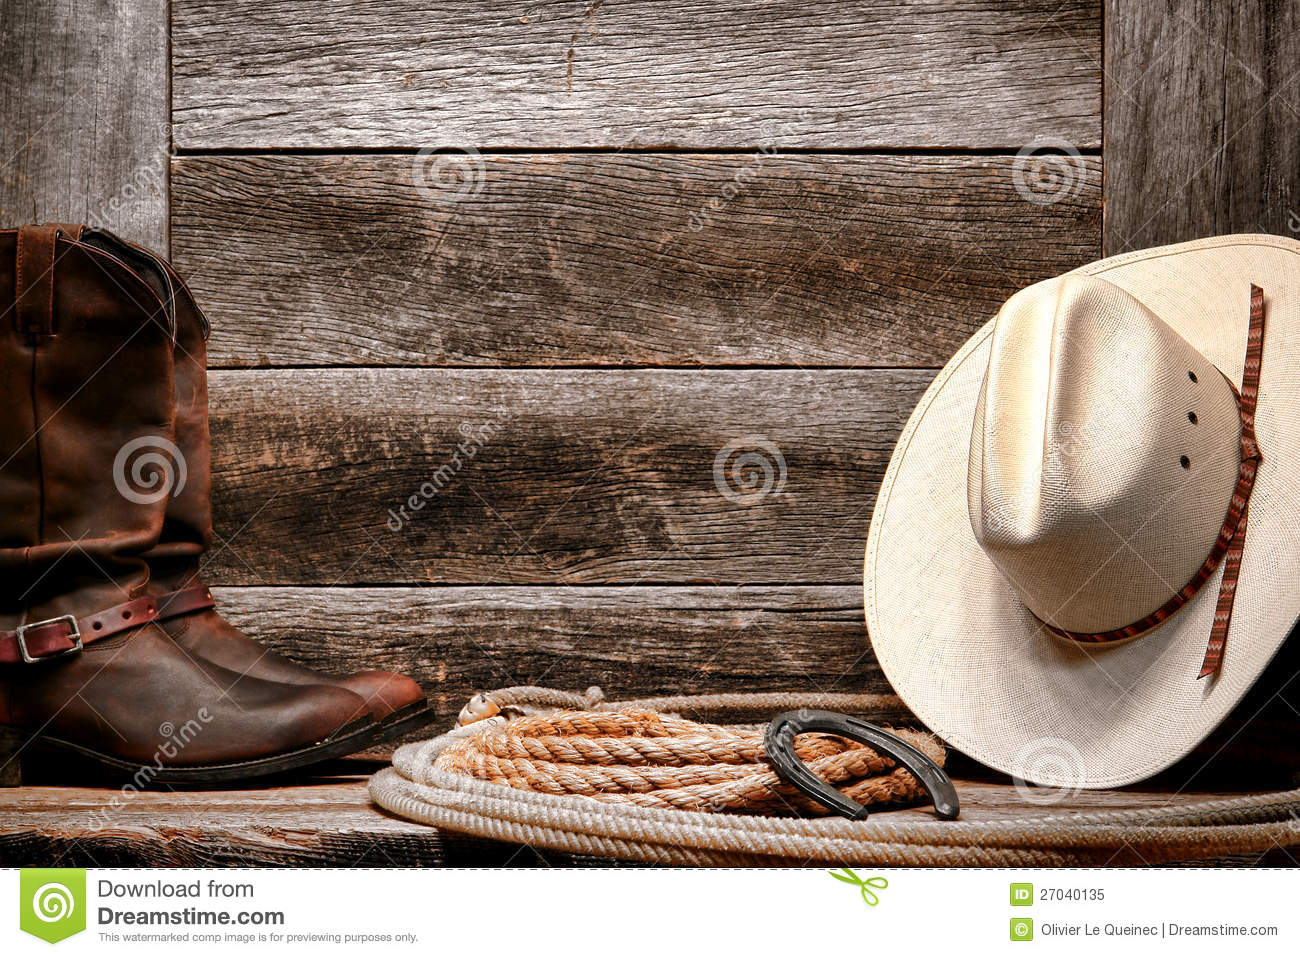 American West Rodeo Cowboy Hat on Lasso with Boots